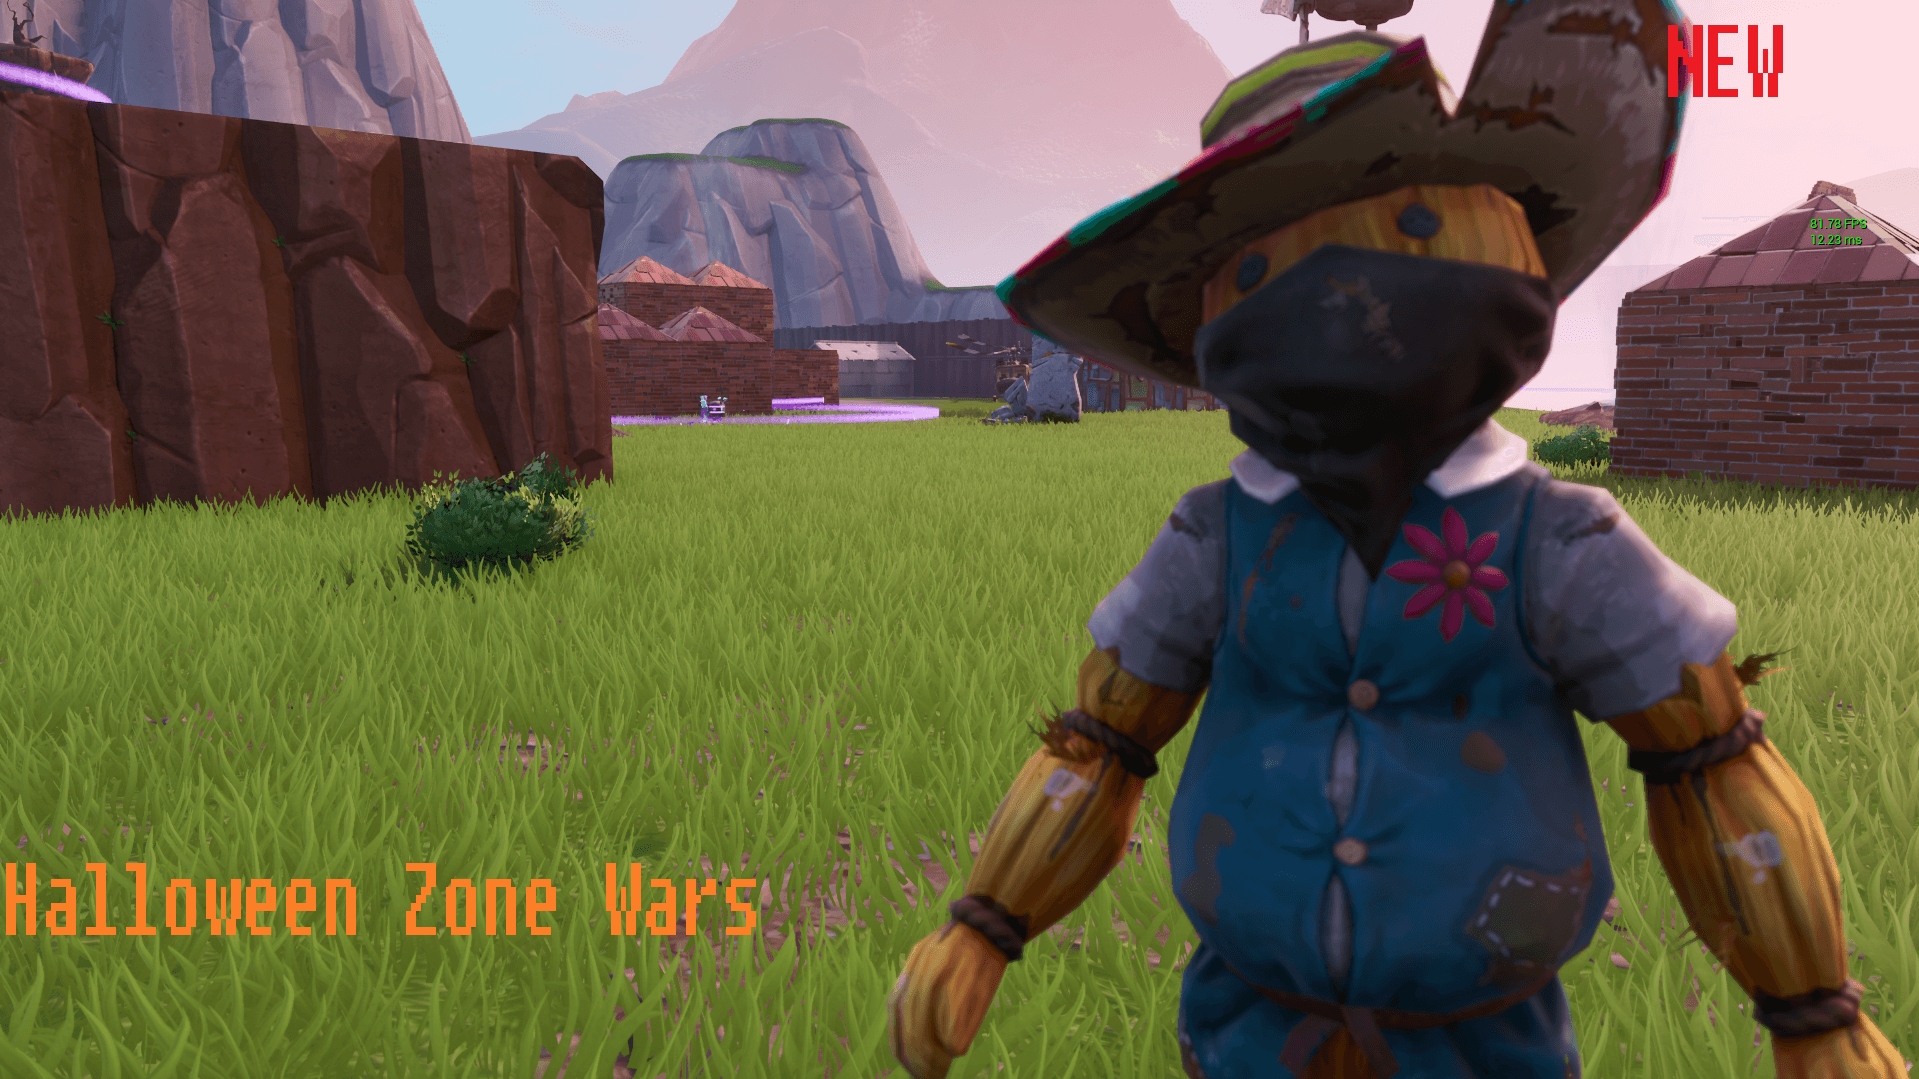 NEW HALLOWEEN ZONE WARS X.4 BY PAN_GO